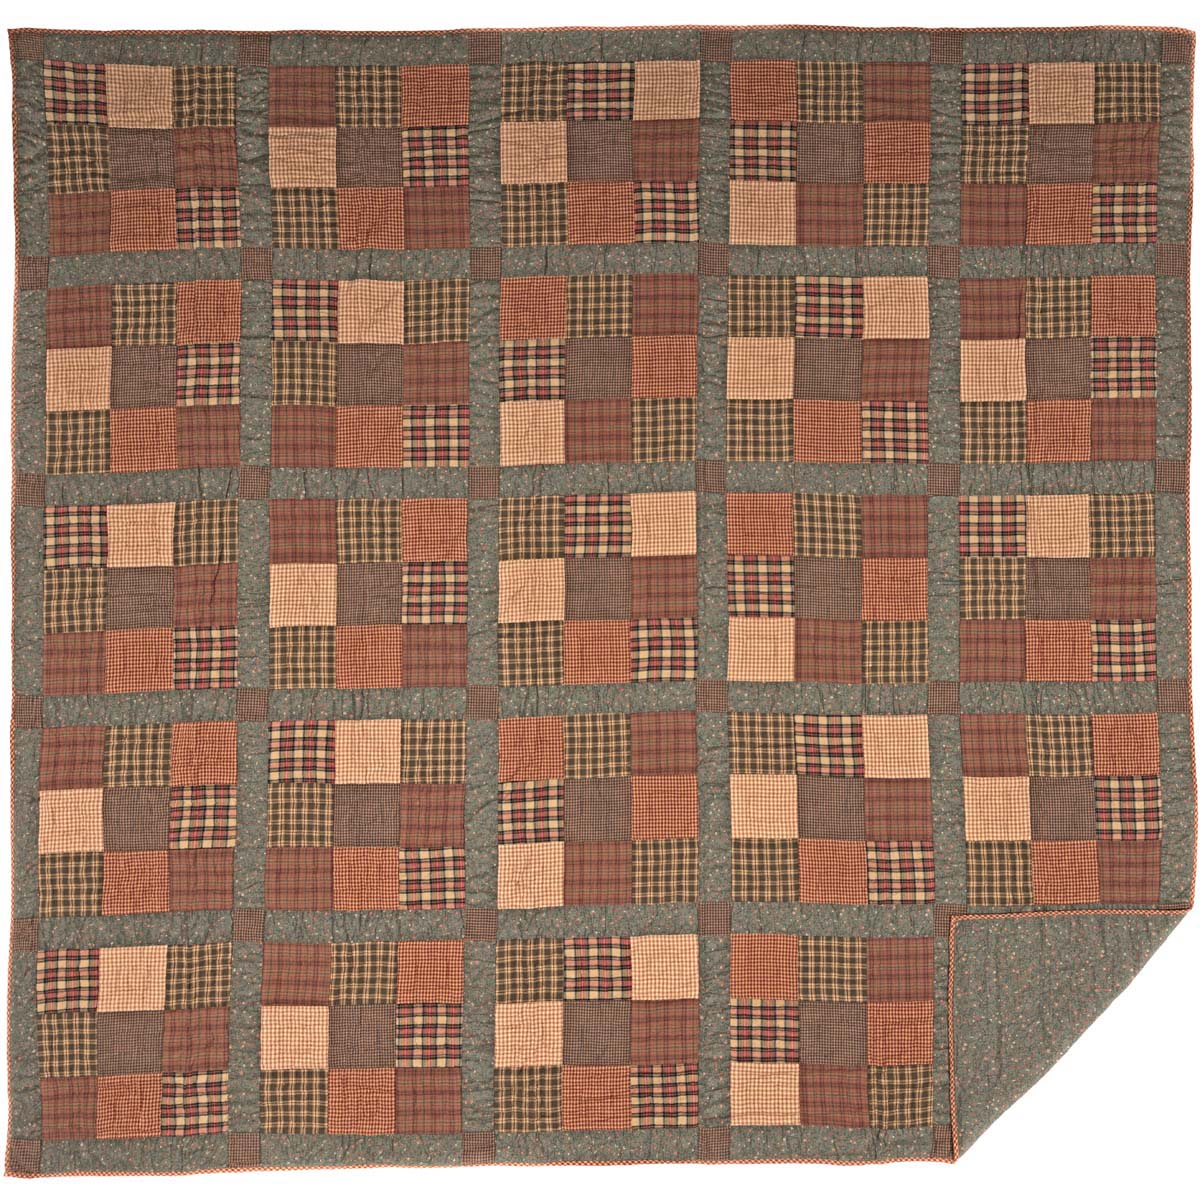 Crosswoods Quilt.